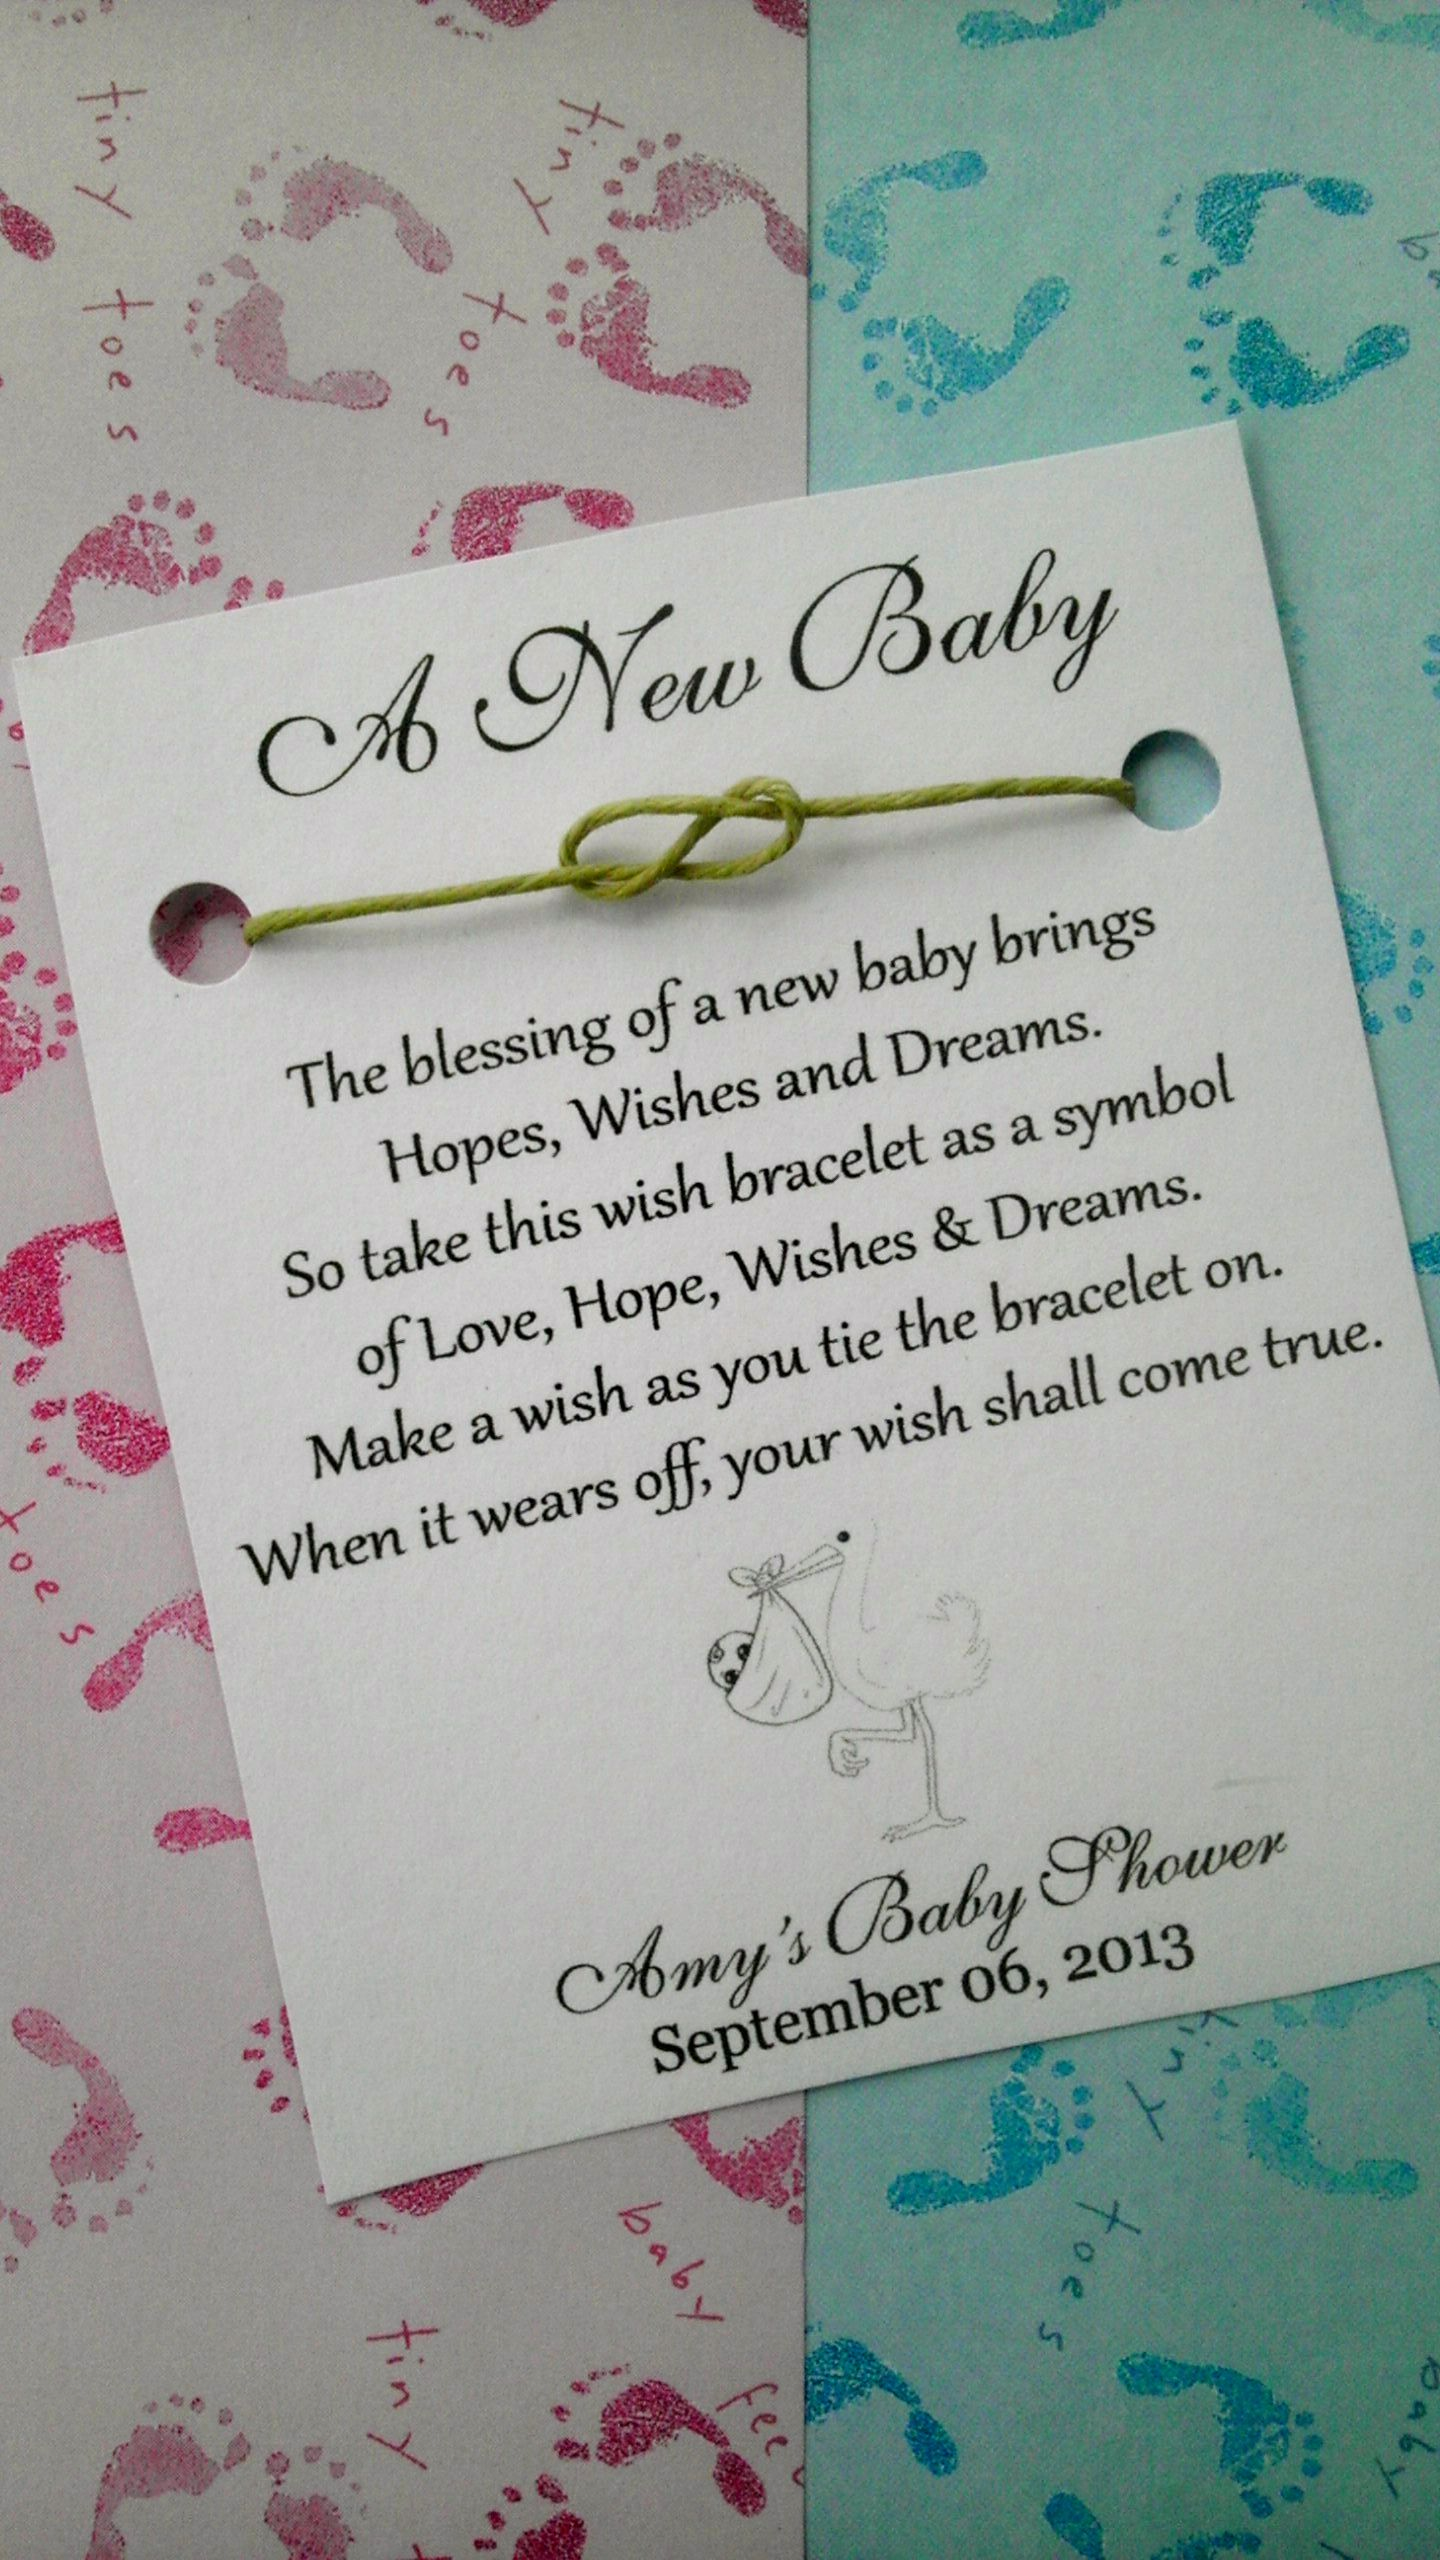 Full Size of Baby Shower:stylish Baby Shower Wishes Picture Inspirations Baby Shower Wishes Baby Shower Poems Ideas Para Baby Shower Baby Shower Gift Ideas Princess Baby Shower Baby Shower Wish Bracelet Shower Favor Favors Personalized Middot That Wedding Boutique Middot Online Store Storenvy